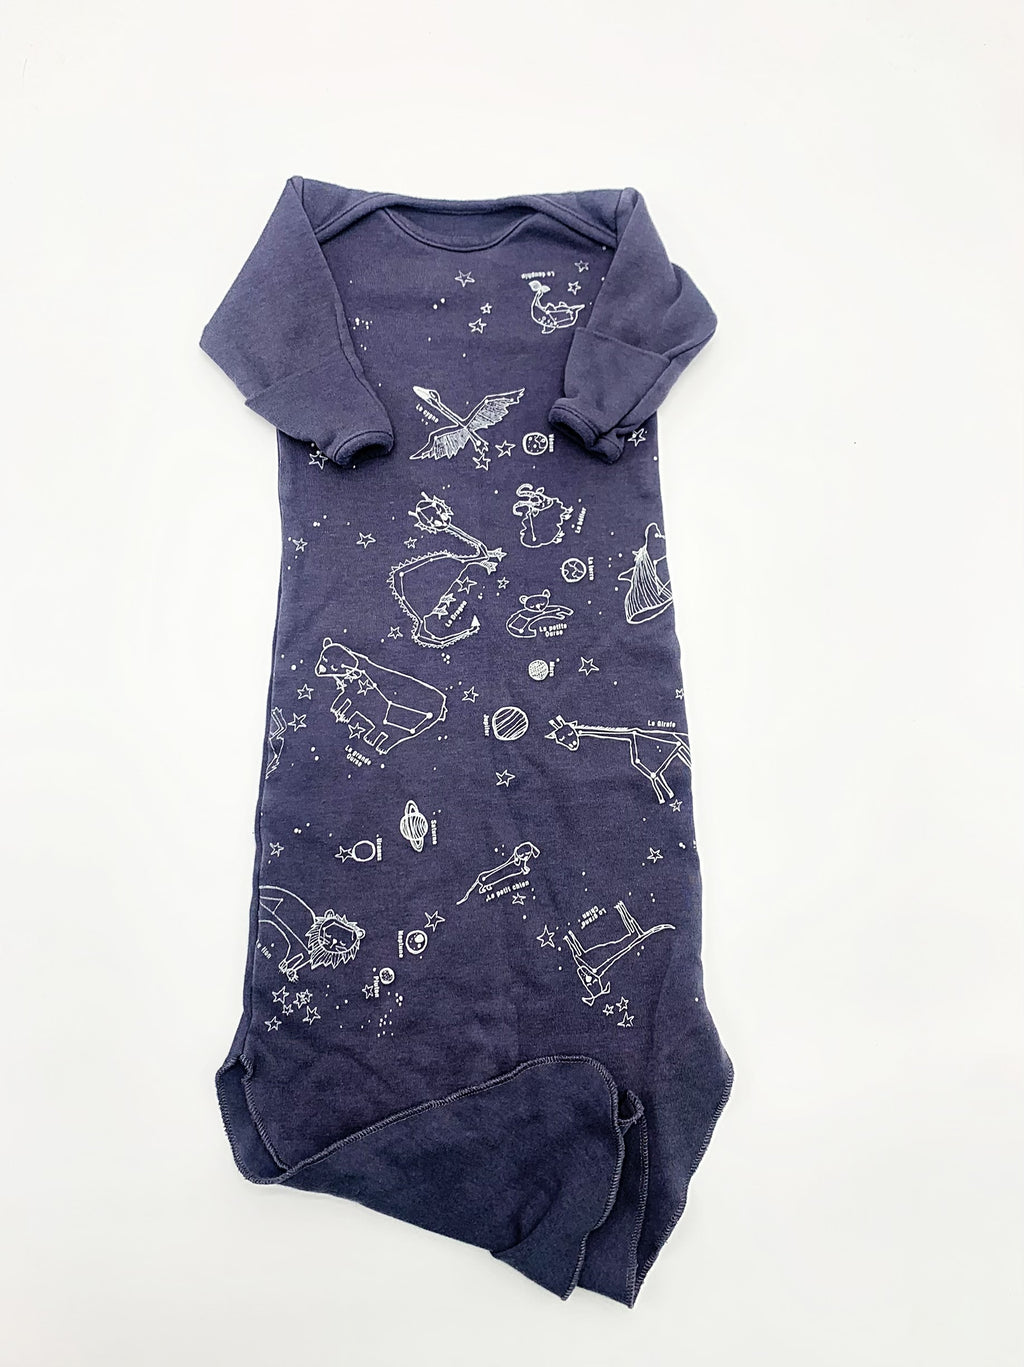 ELECTRIK kids gown  size 3-6m